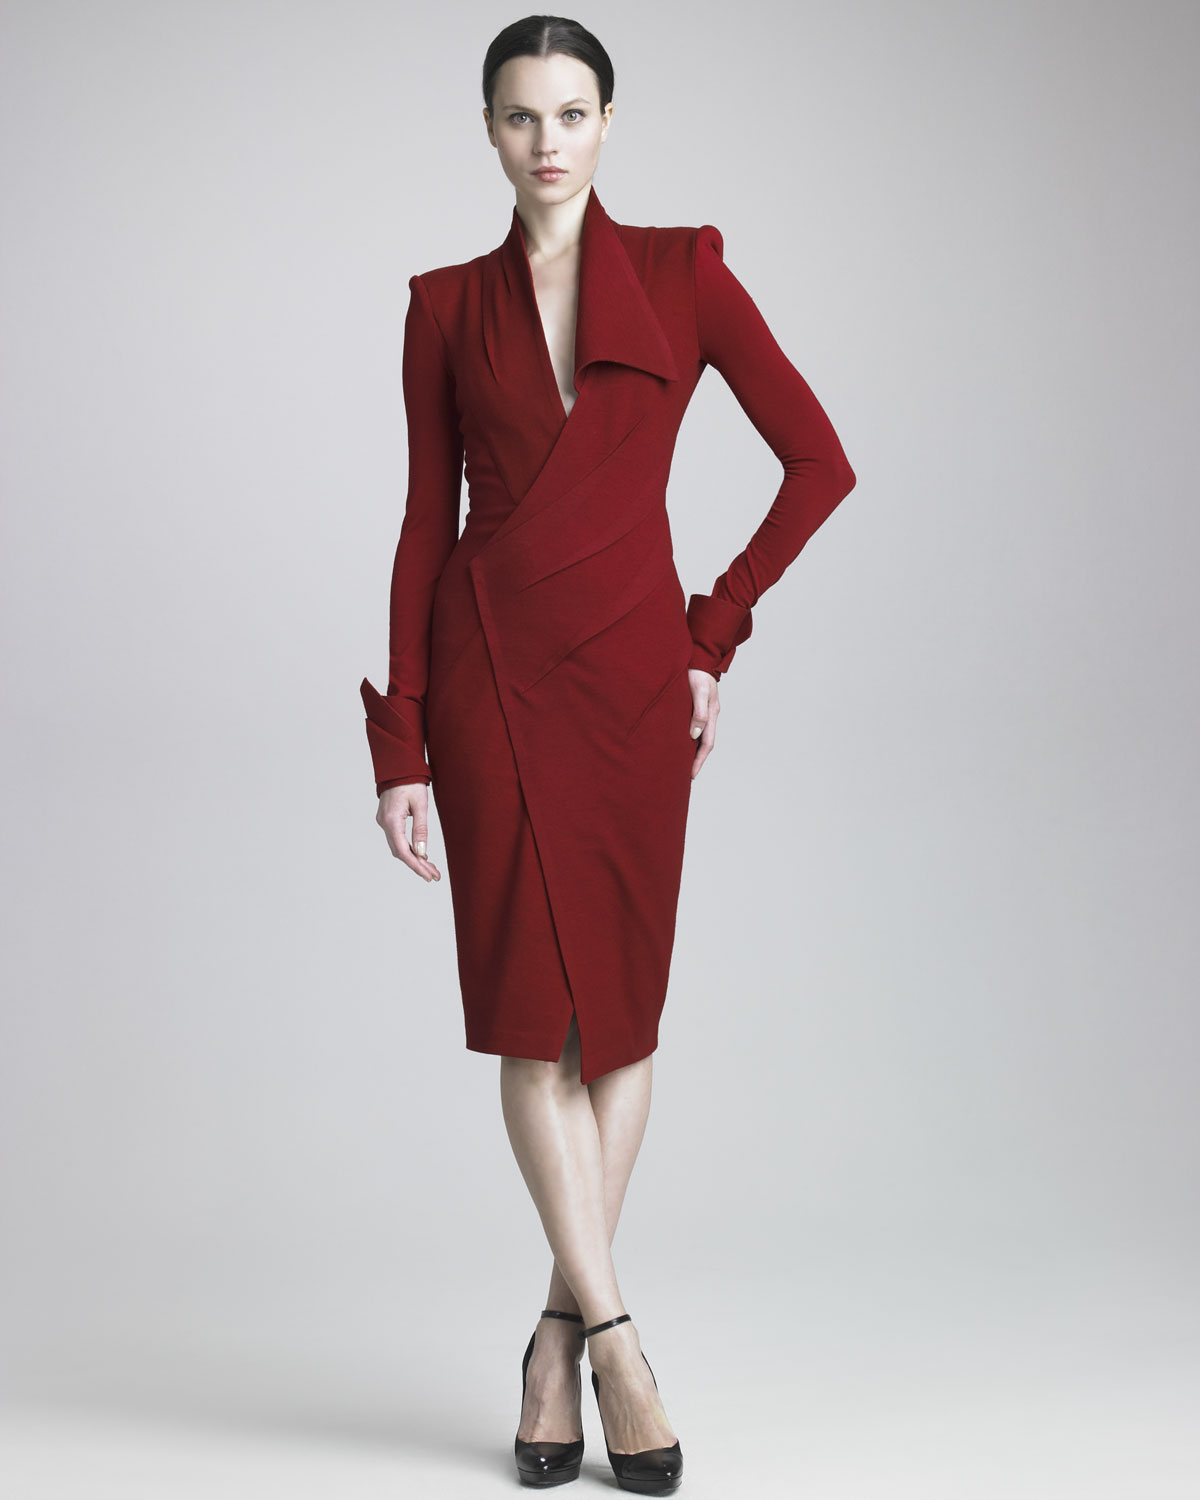 Donna karan new york draped jersey longsleeve dress in red for Donna karen new york